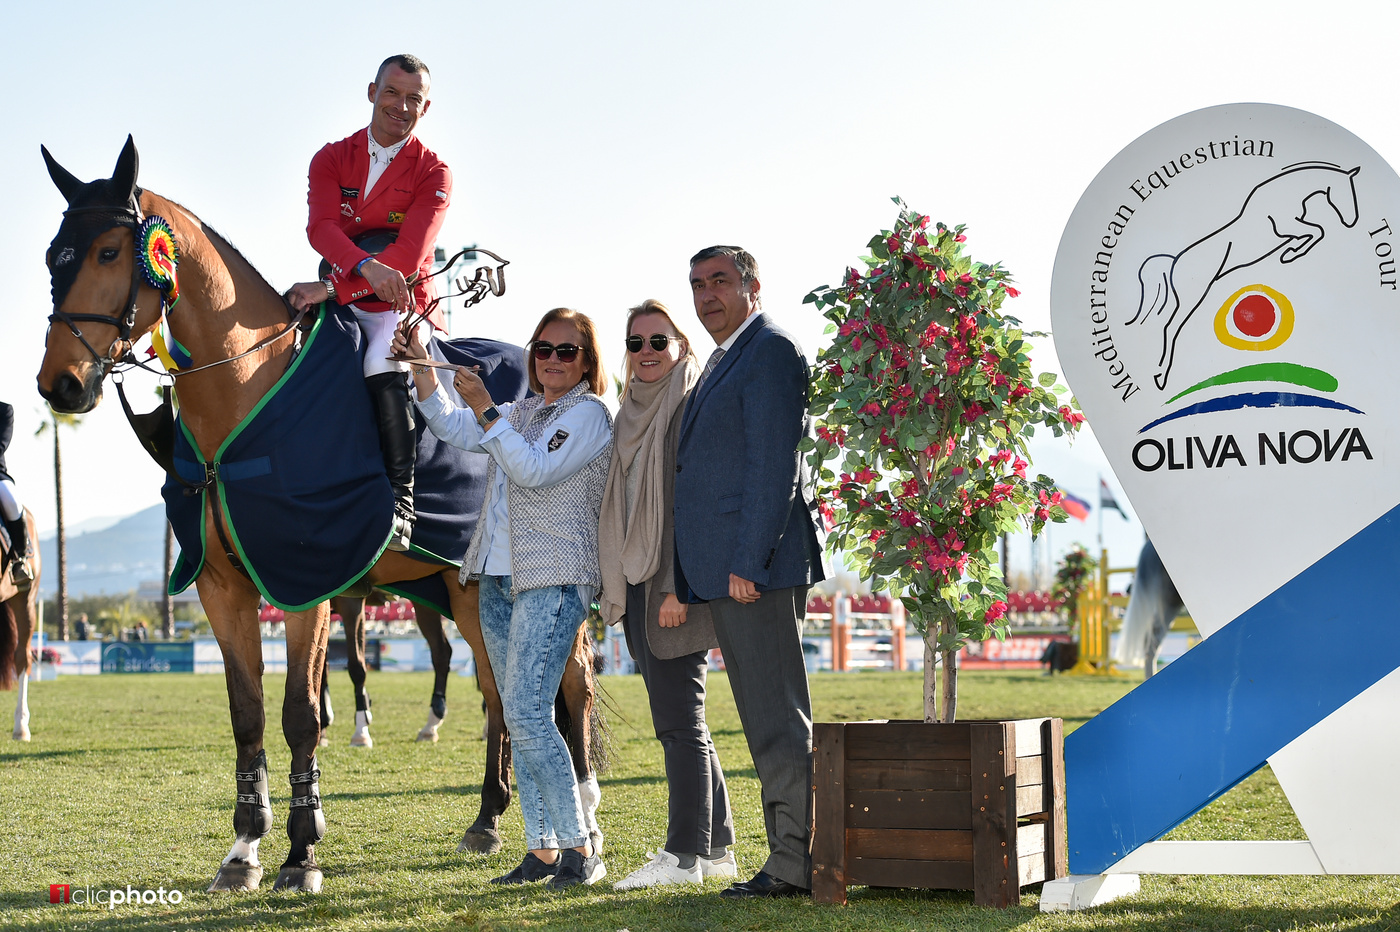 This Week's CSI2* / CSI3* winners in Europe